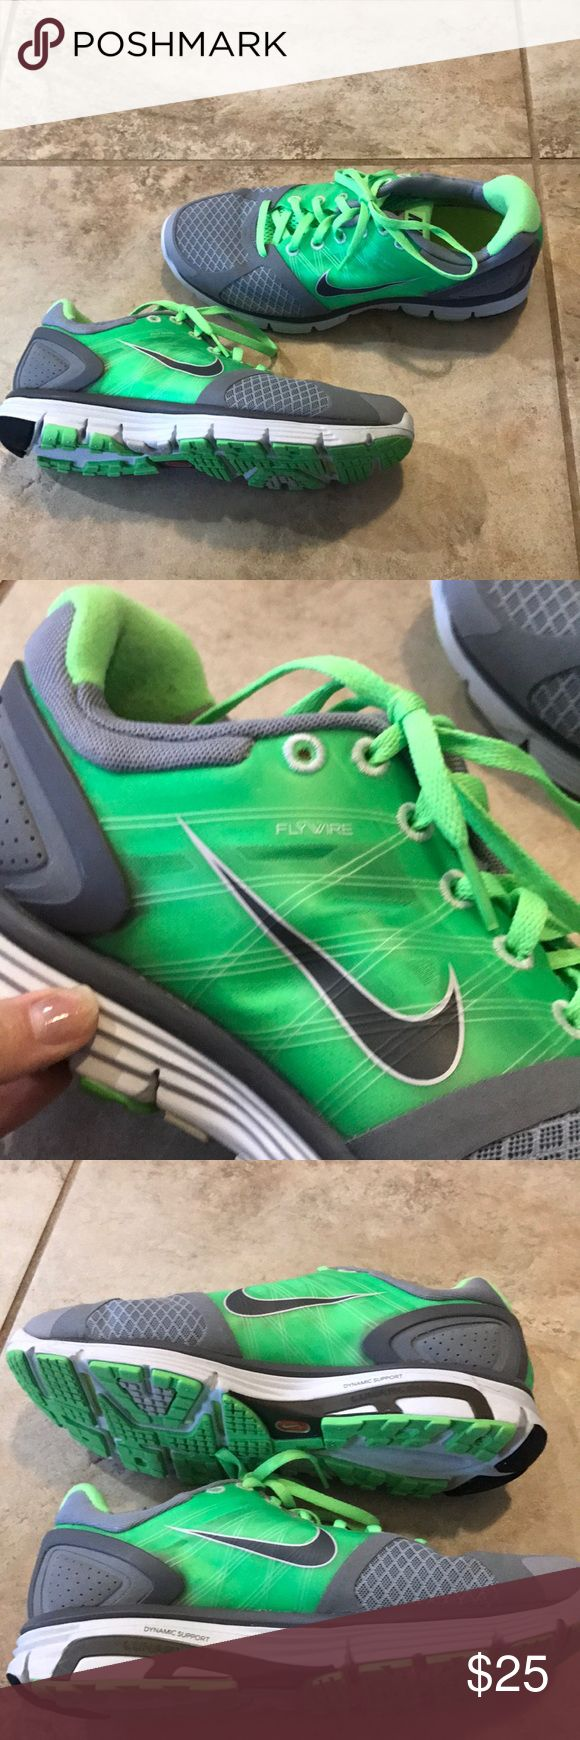 Gently used Nike Lunarglide 2 size 8.5 Gently worn only a few times Nike Lunarglide 2 sneakers size 8.5 Nike Shoes Sneakers